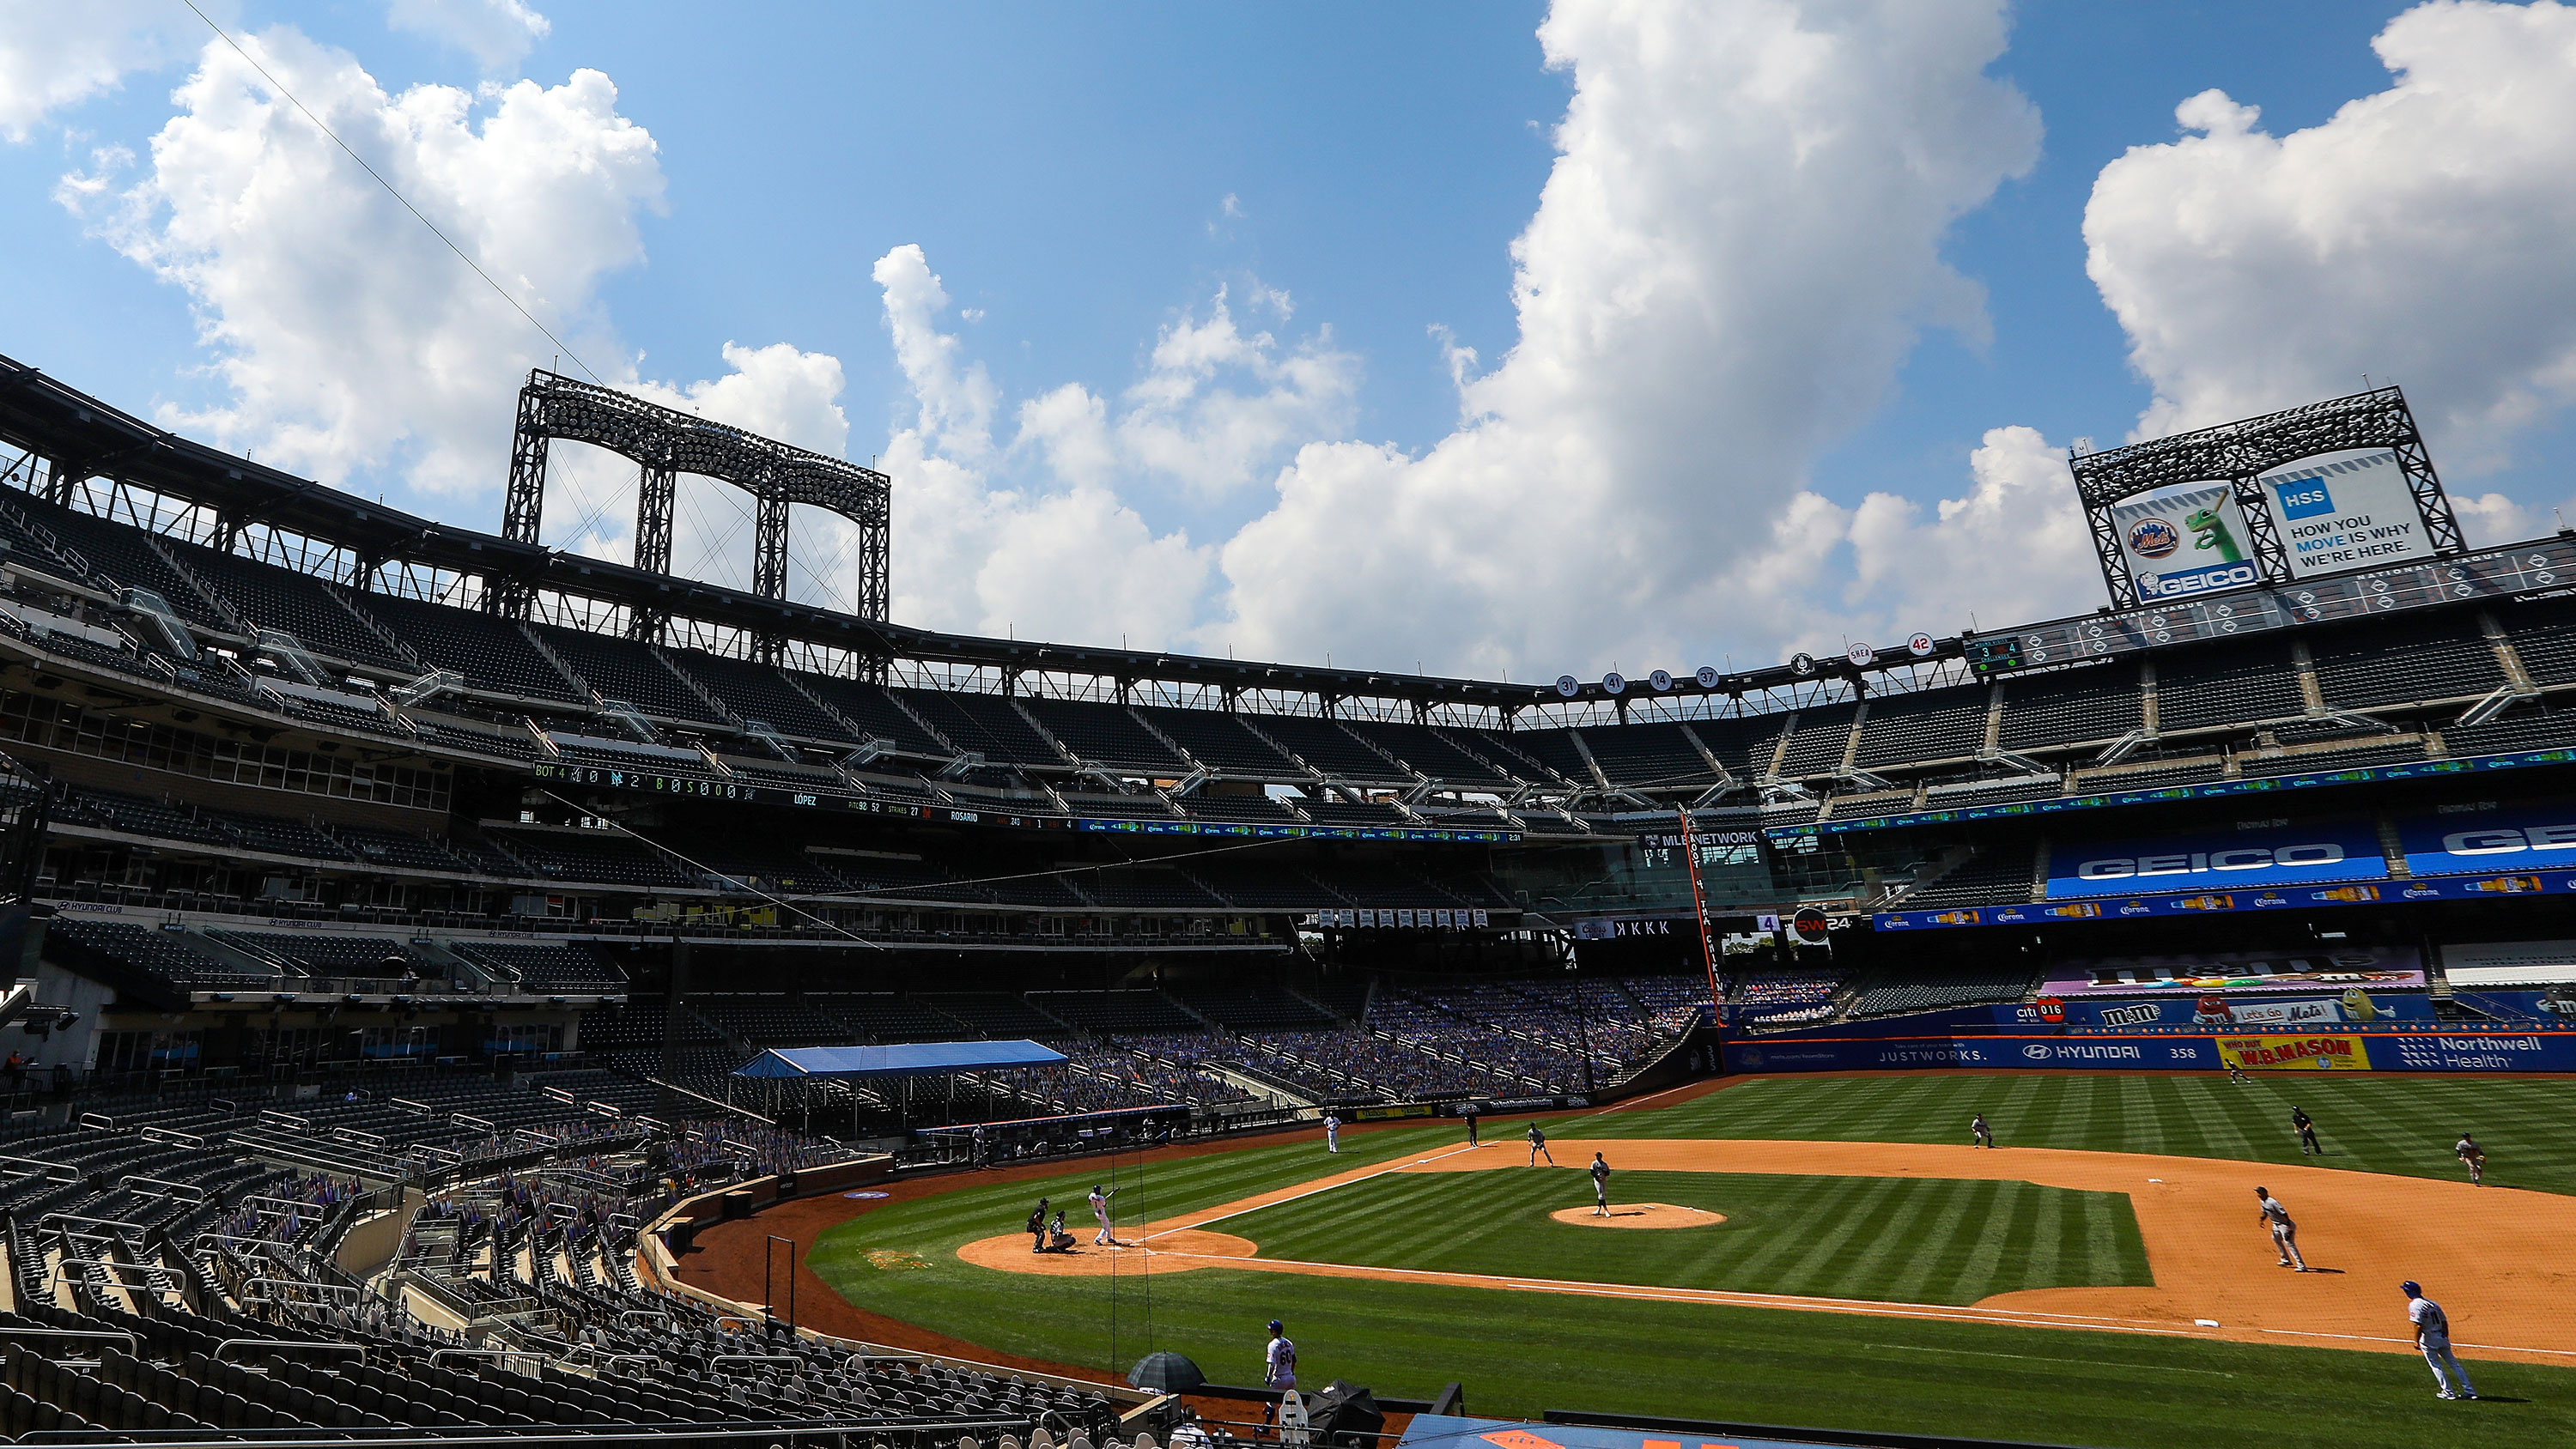 The New York Mets and Miami Marlins face off at Citi Field on August 9 in New York.